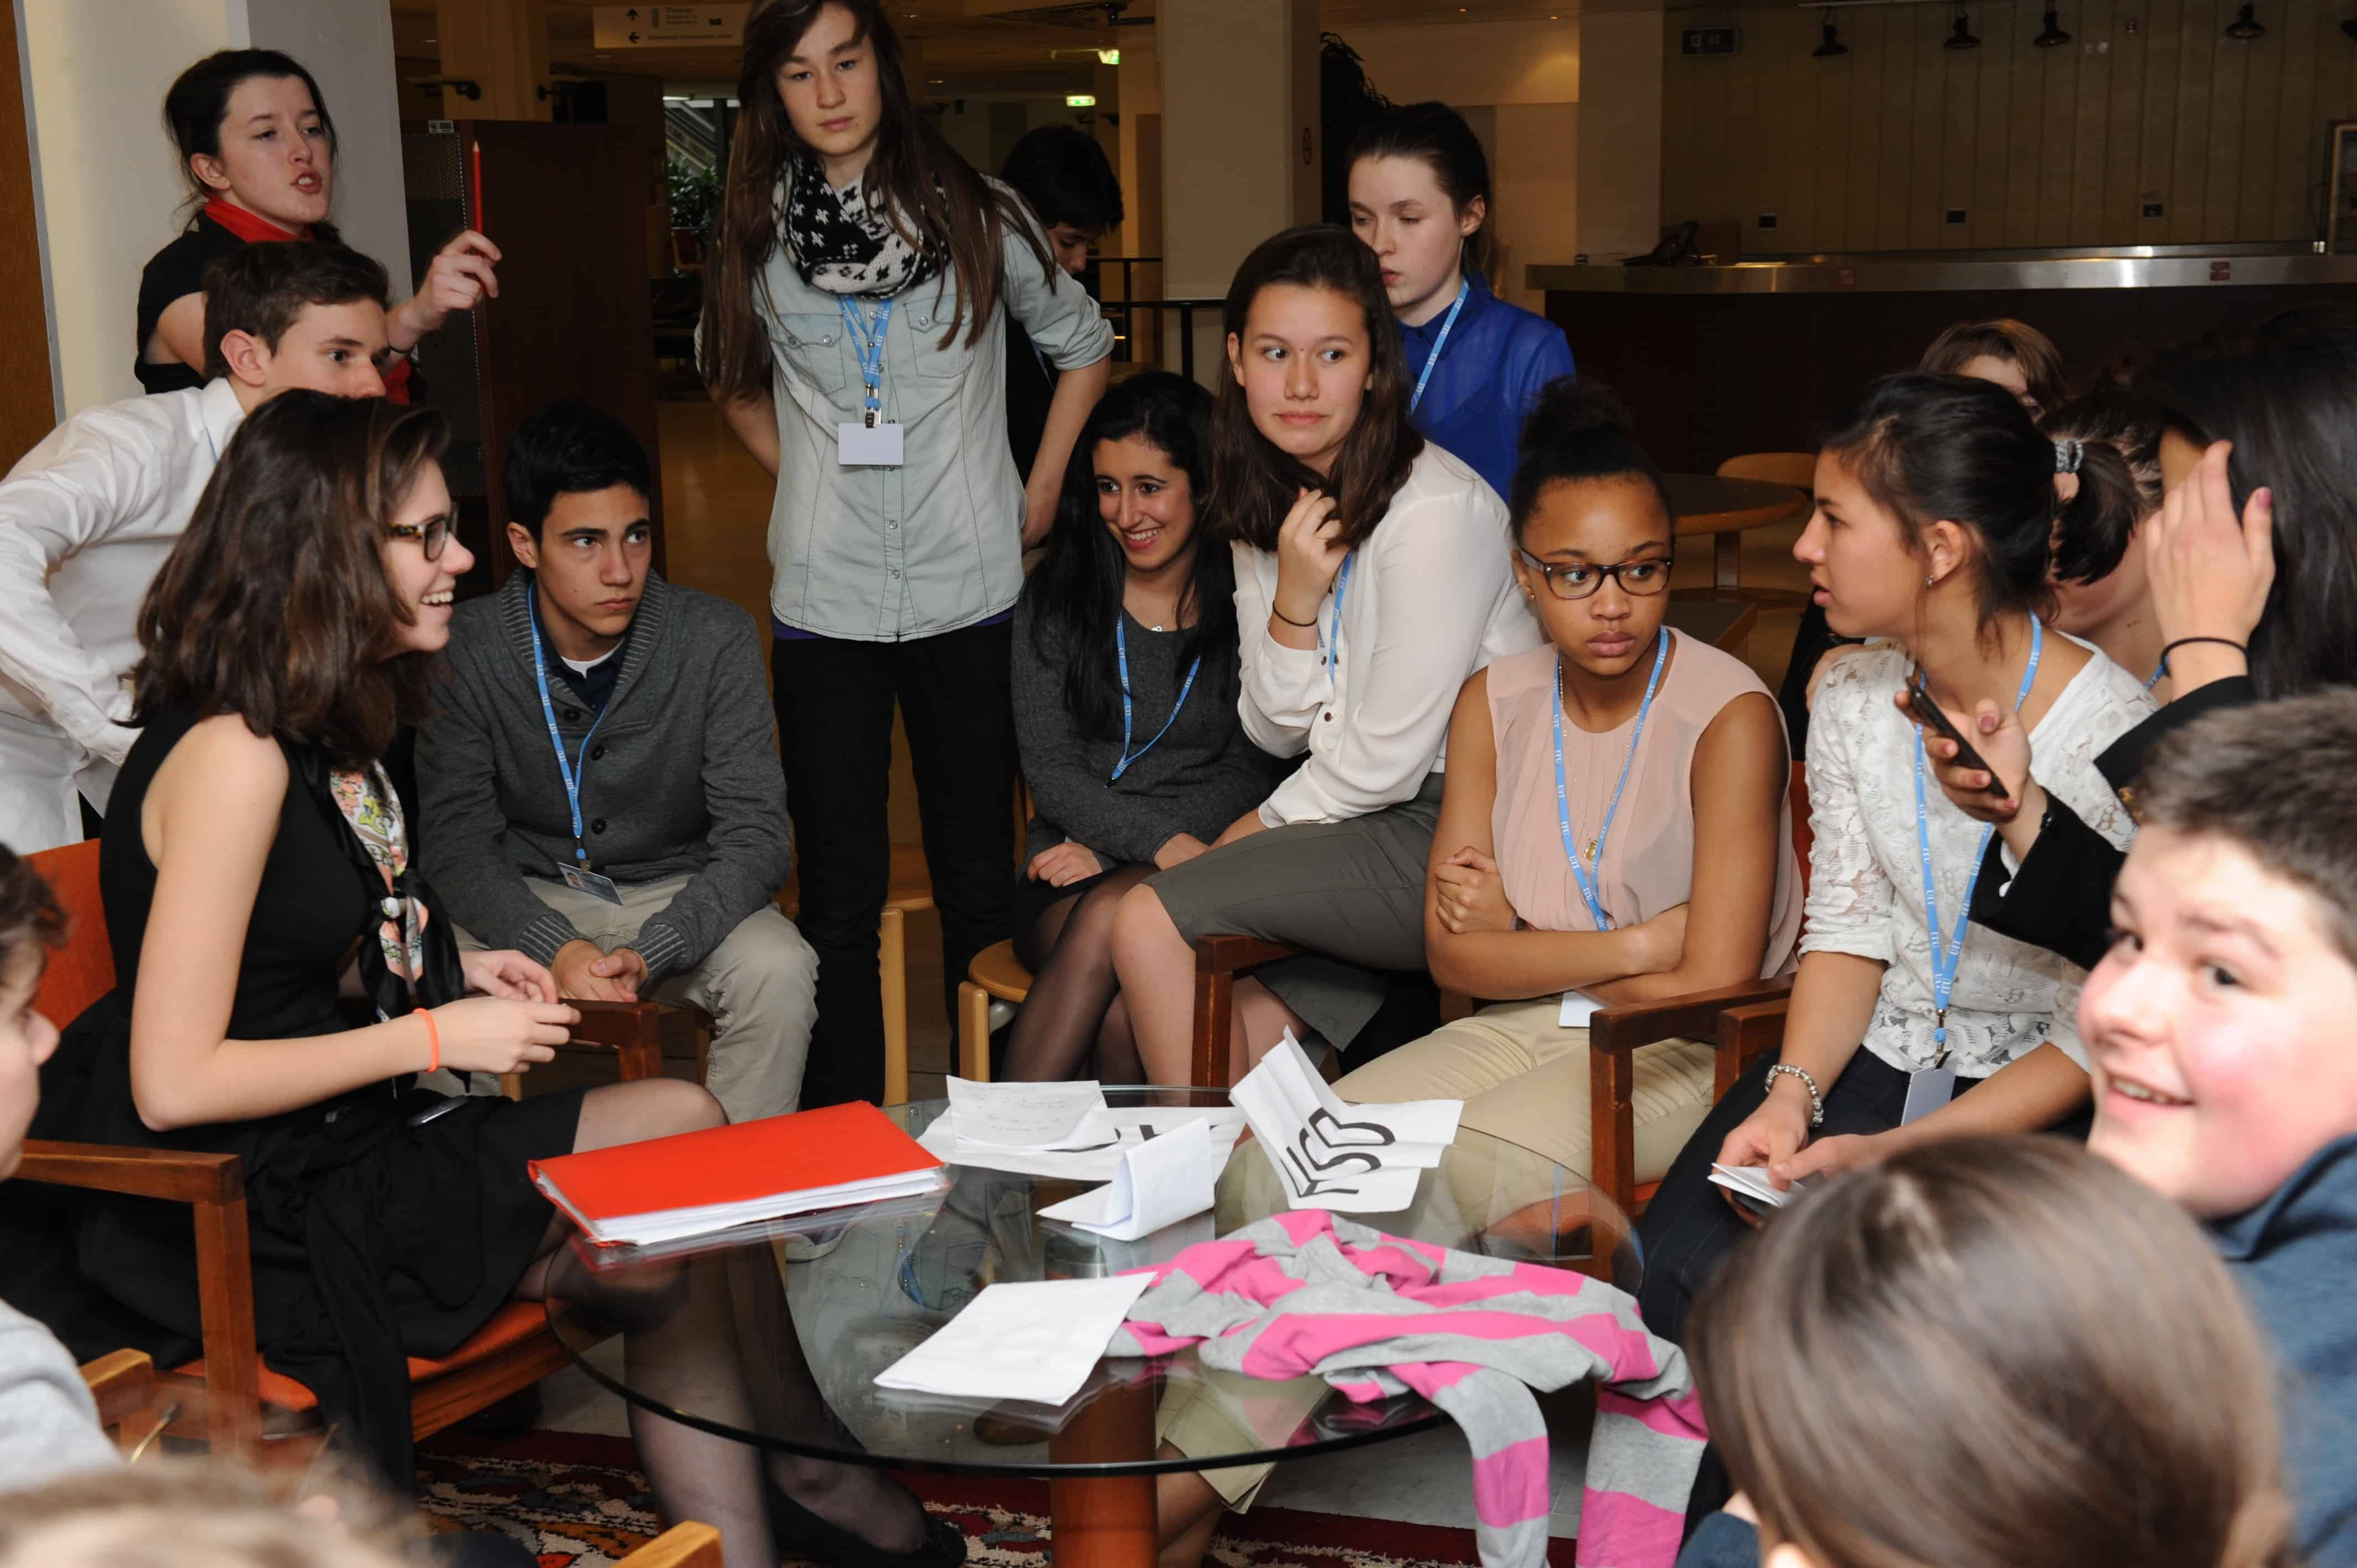 Teamwork: The Underrated Central Piece of Model UN Conferences